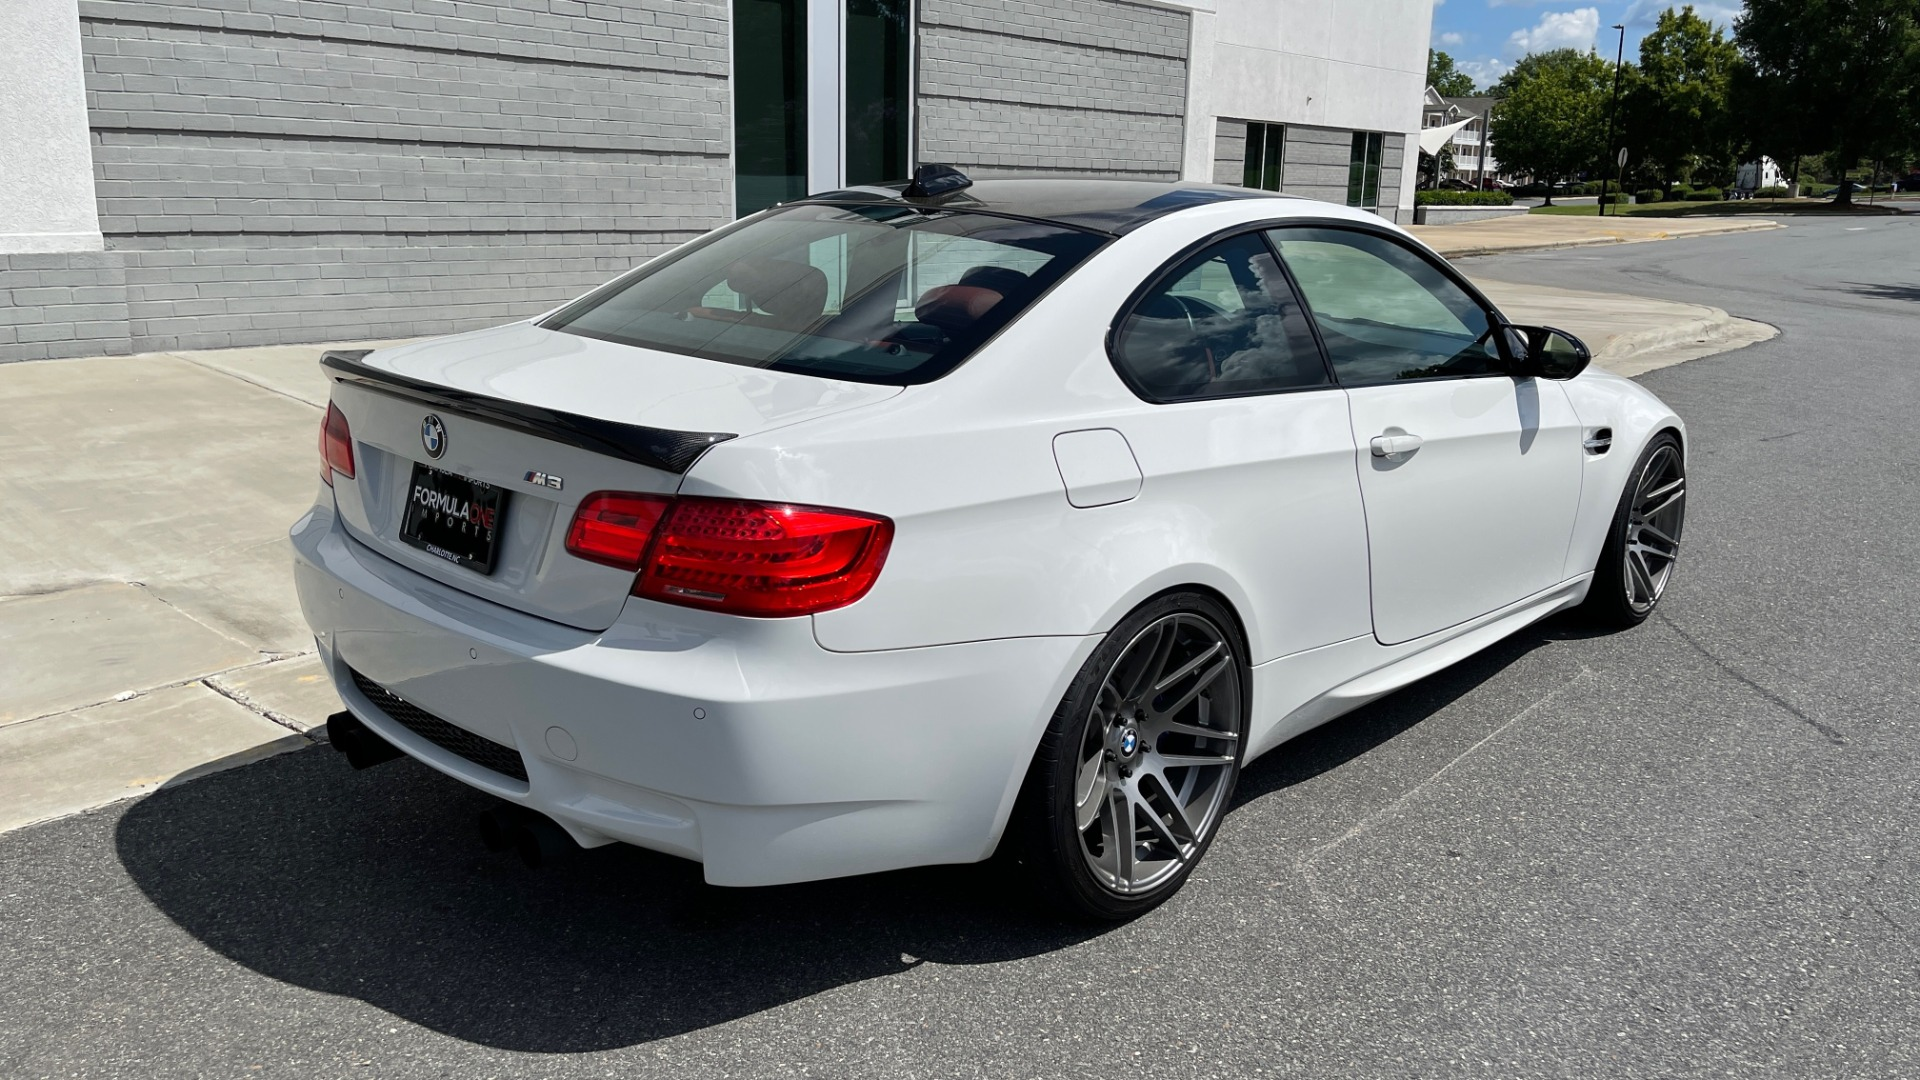 Used 2011 BMW M3 PREMIUM COUPE / CLD WTHR / TECH / SMARTPHONEINT / PARK ASST for sale Sold at Formula Imports in Charlotte NC 28227 2